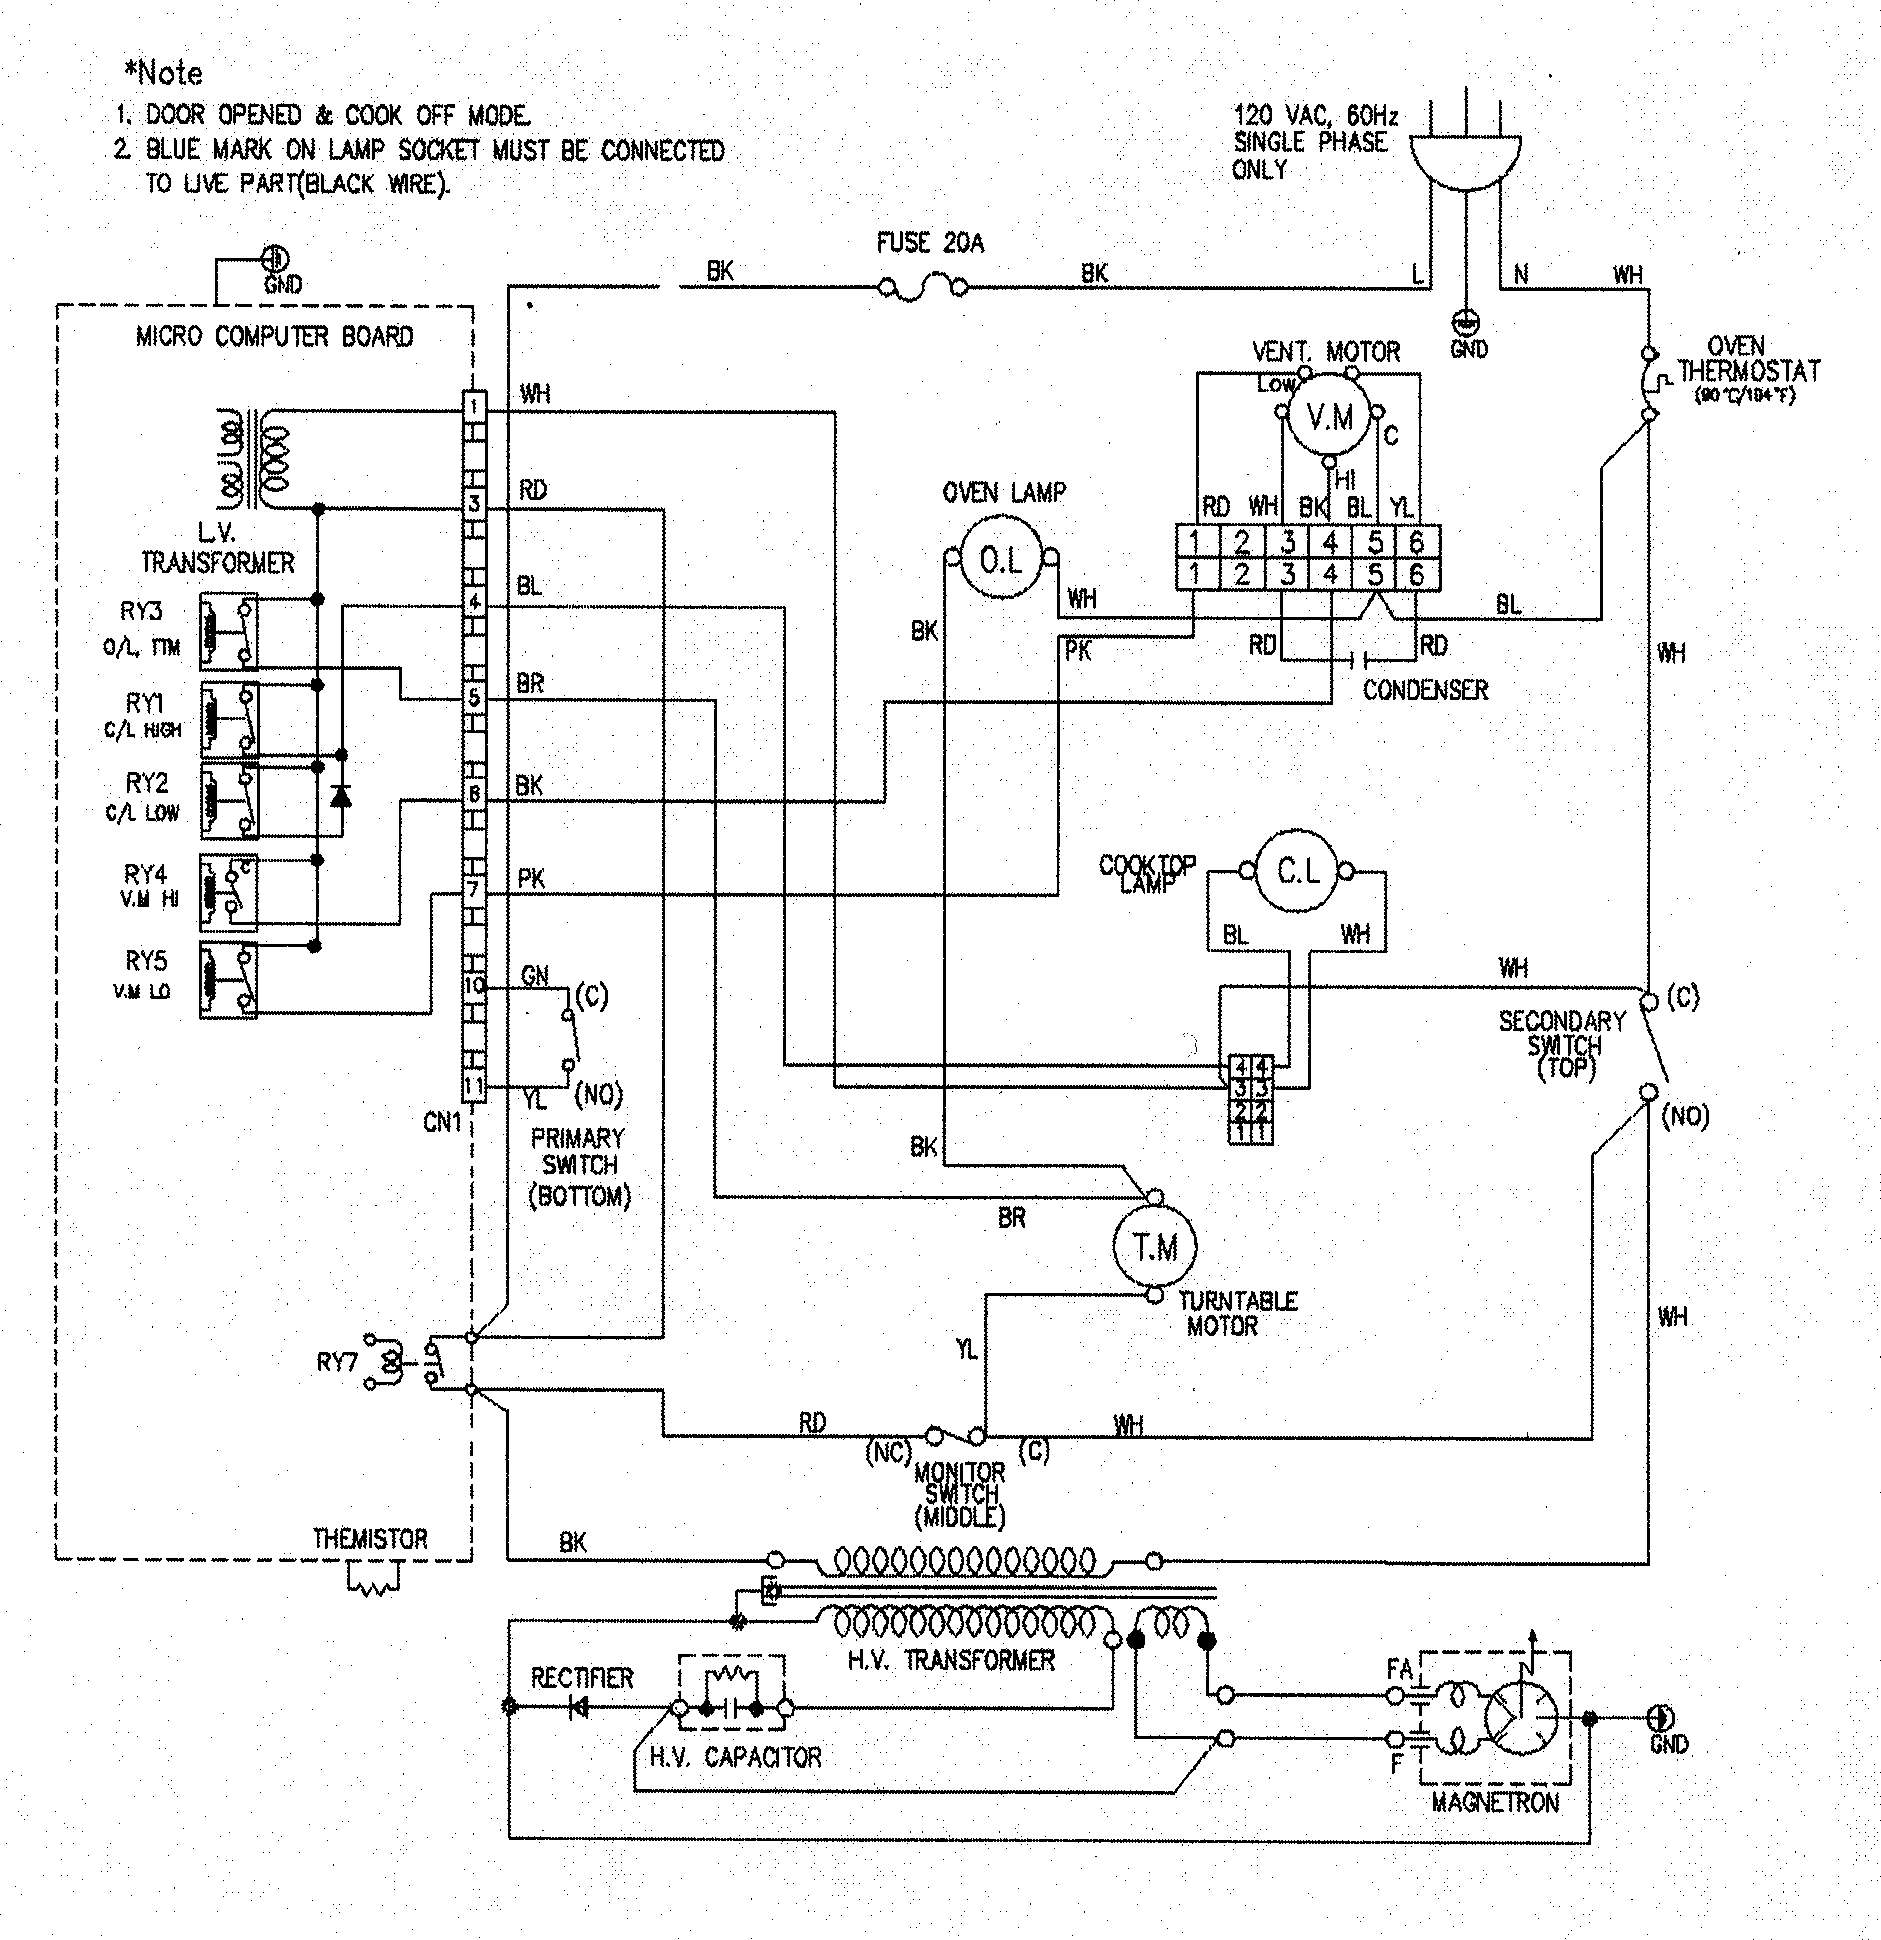 microwave schematic wiring diagram centredownload microwave ovens schematic diagrams and service manuals s [ 1881 x 1940 Pixel ]